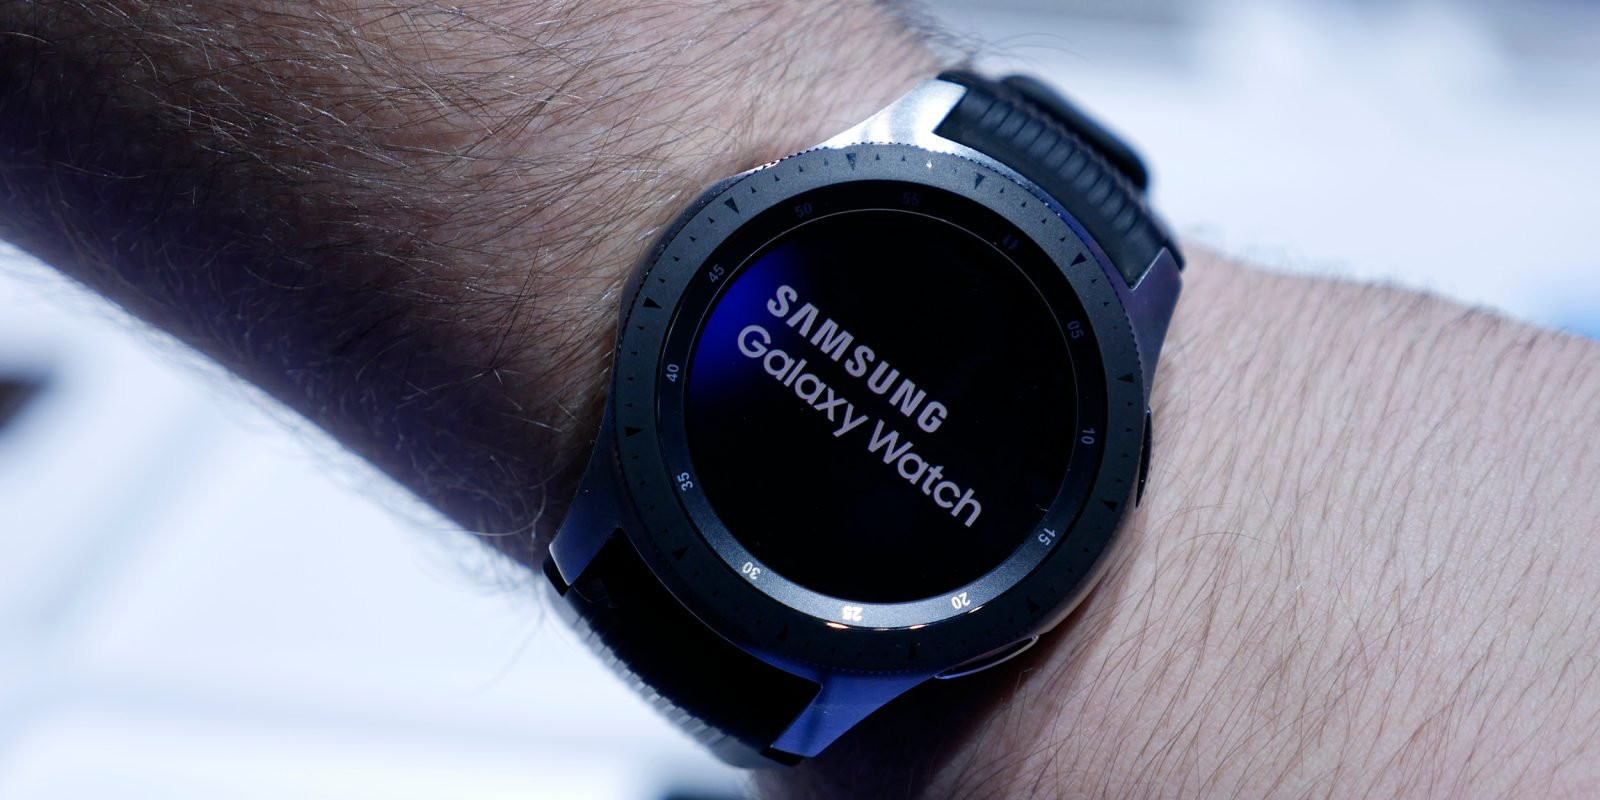 One UI update rolling out for Samsung Galaxy Watch, Gear S3, Gear Sport now